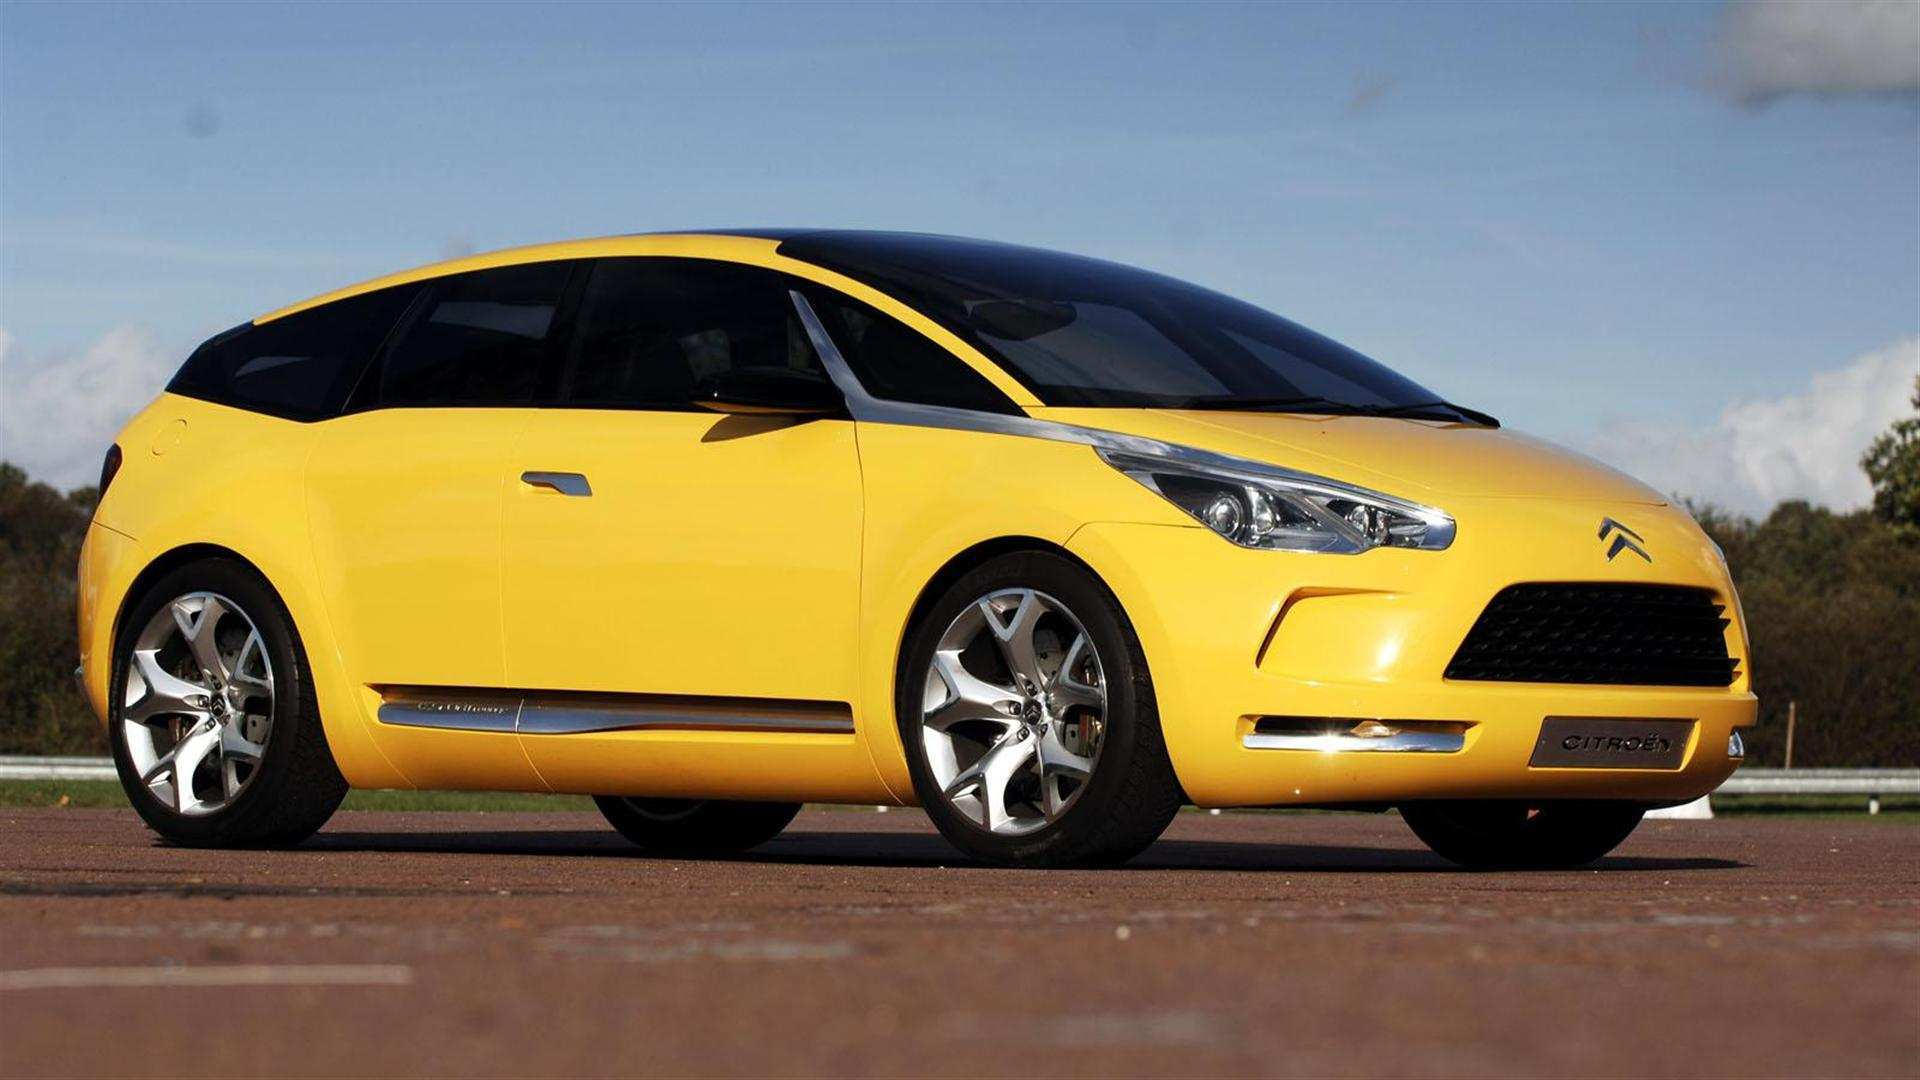 66 Gallery of Citroen C4 2020 Rumors by Citroen C4 2020